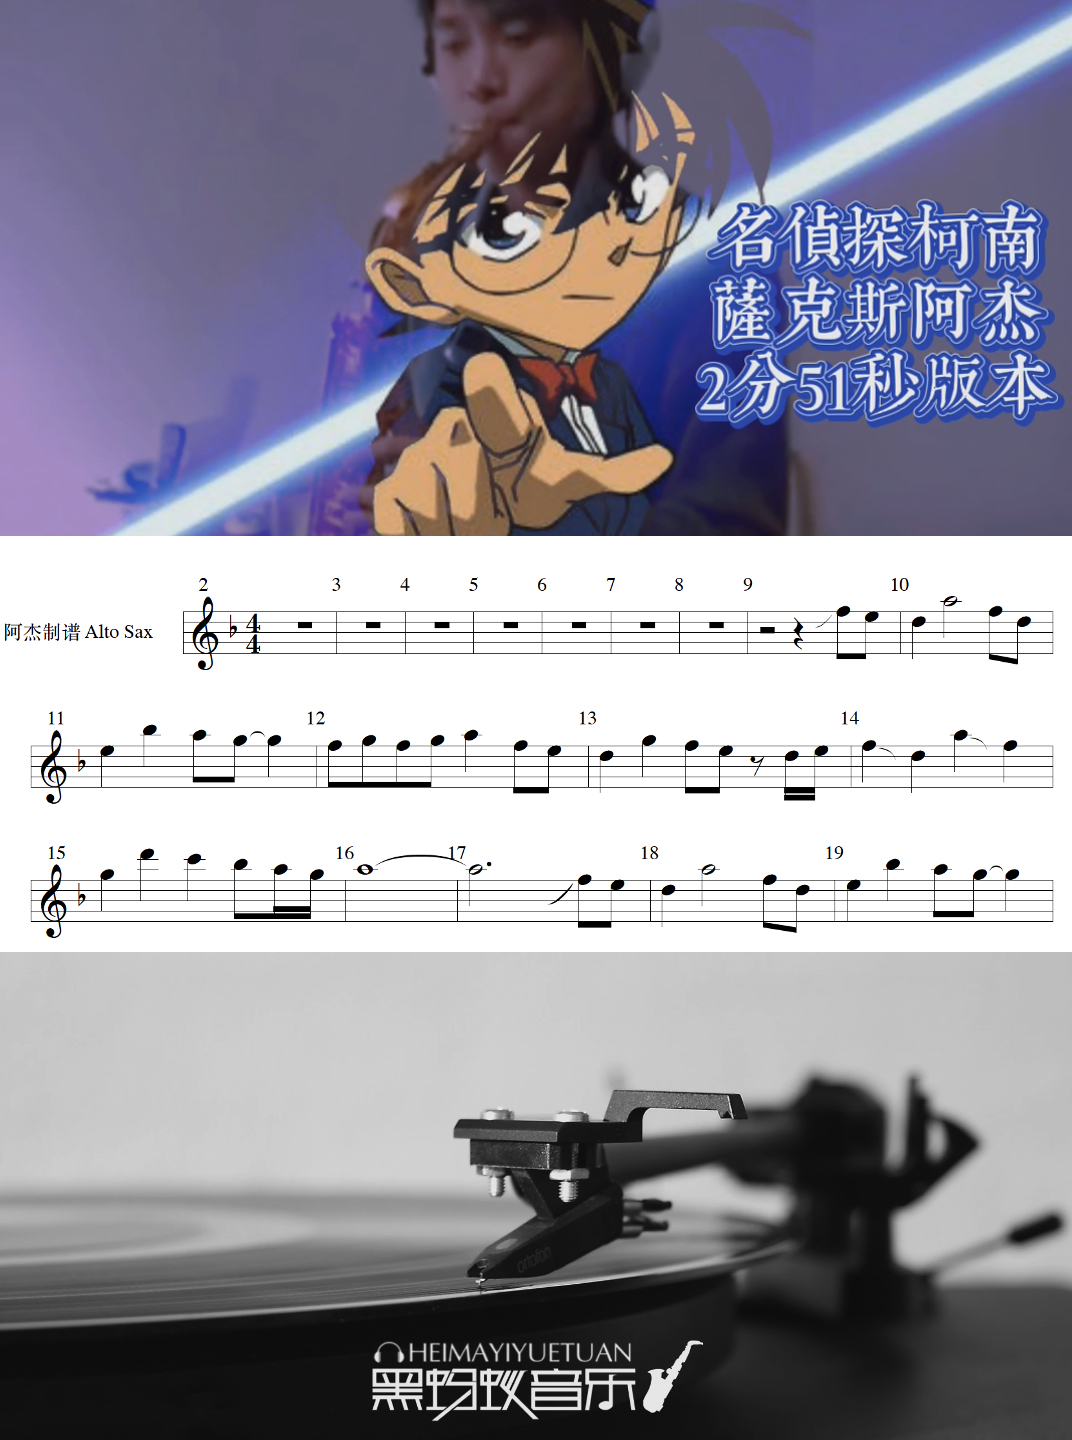 Famous detective Conan, if you dont have your saxophone score, Ajies 2:51 score + accompaniment + demonstration